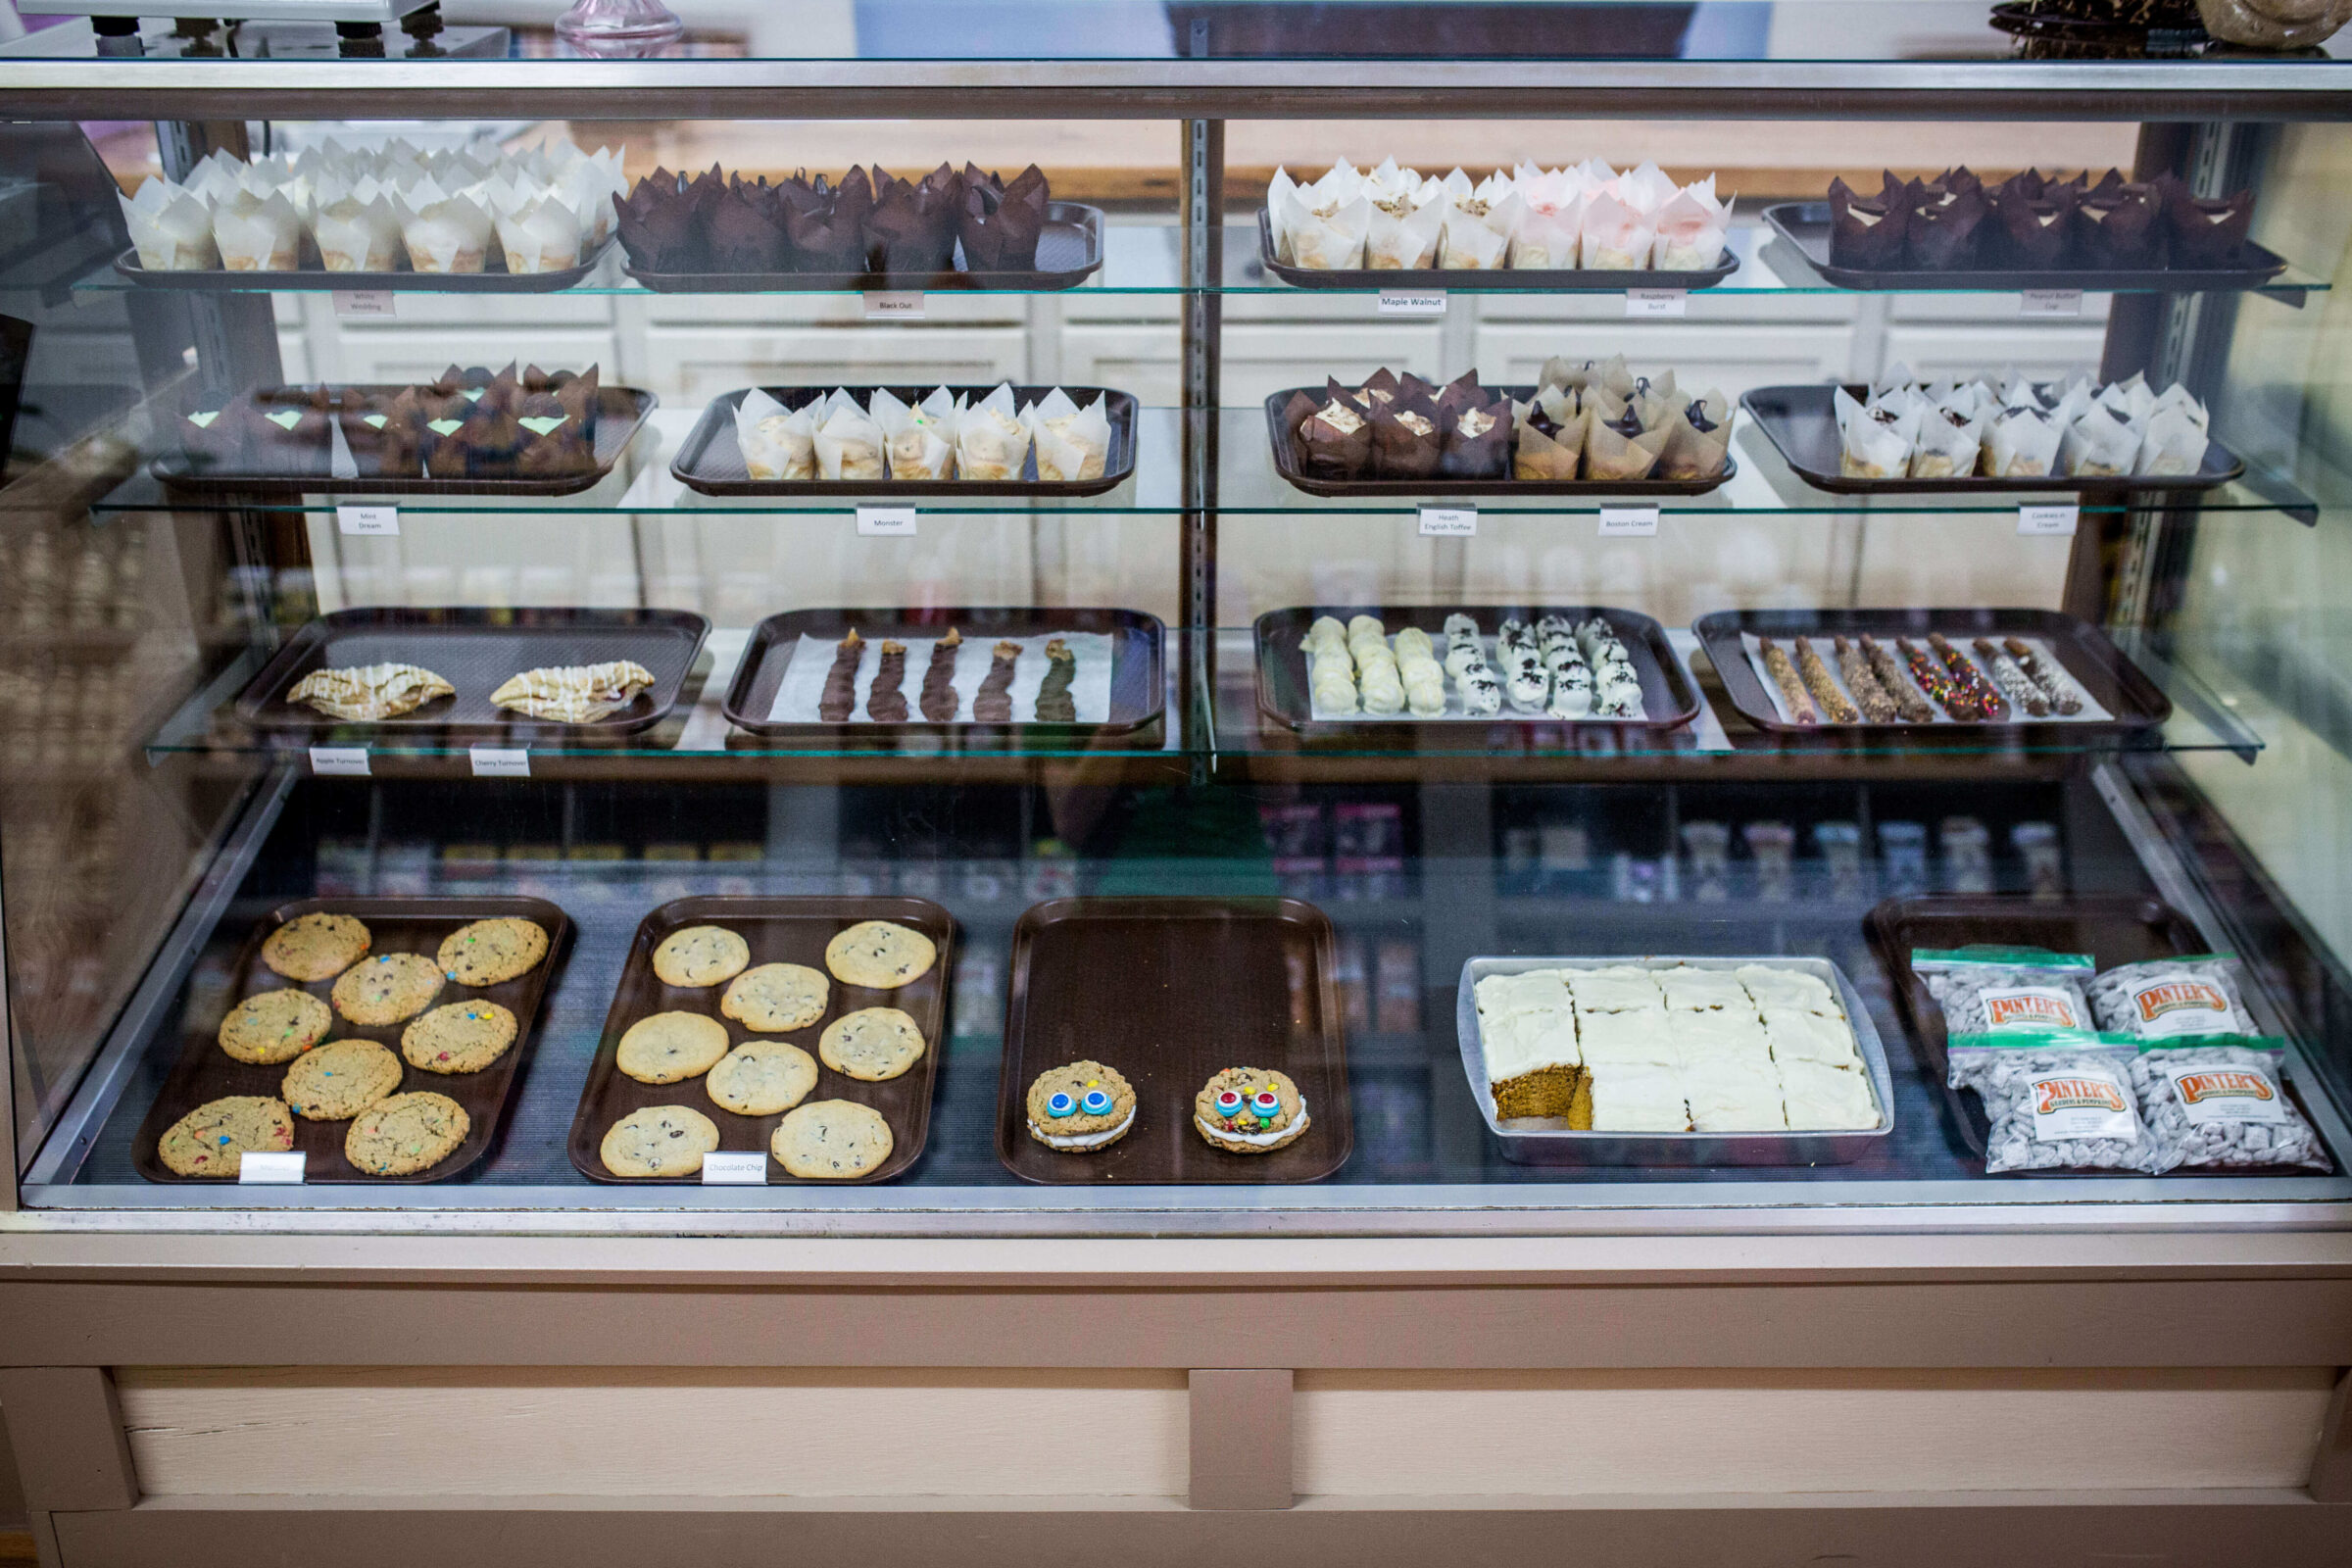 Pinter's Candies & Gifts' bakery counter